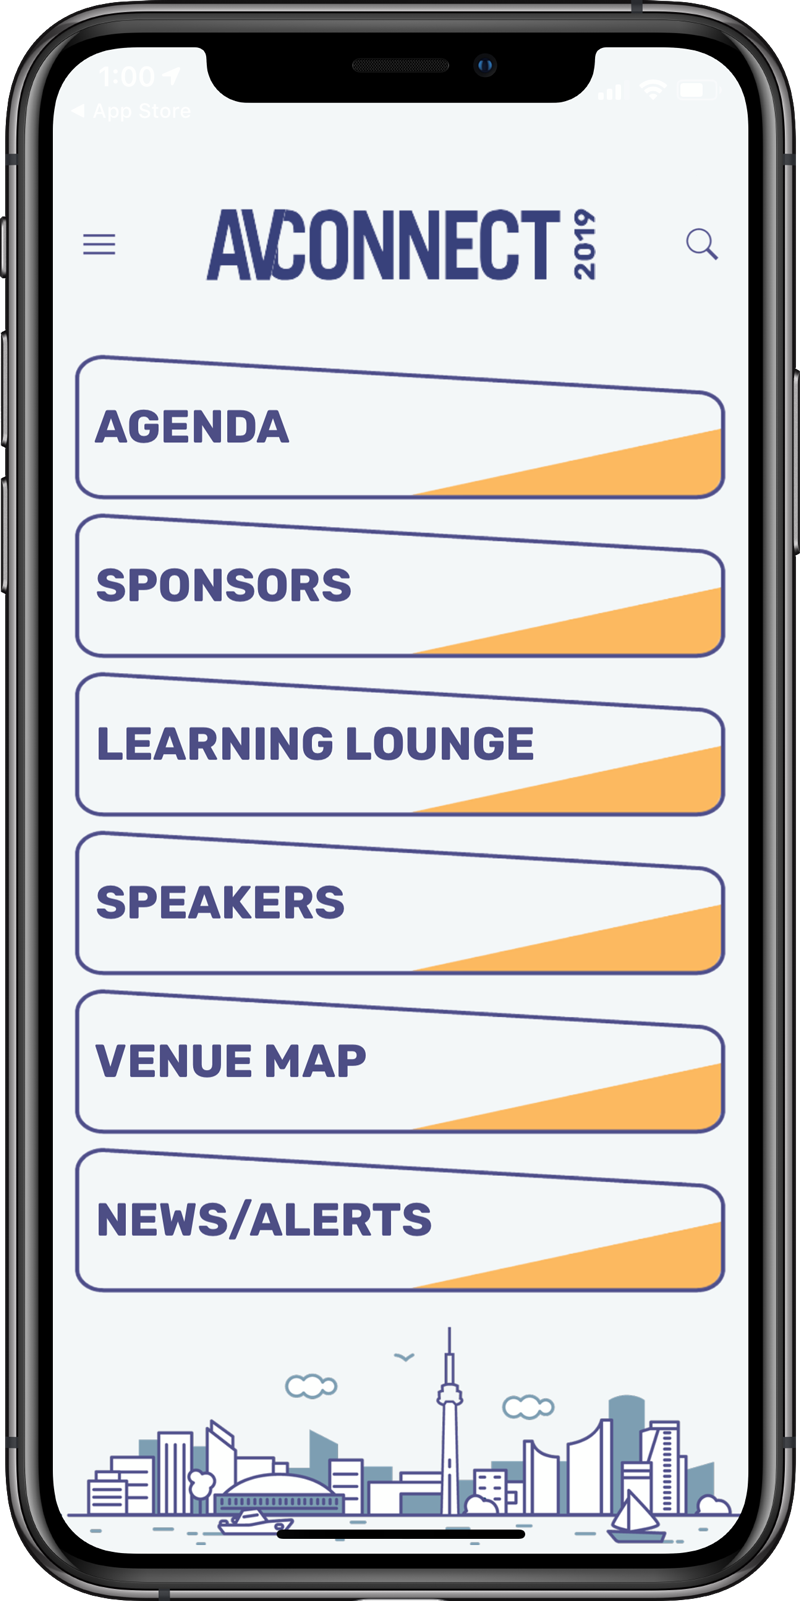 AudienceView AVConnect Users Conference App